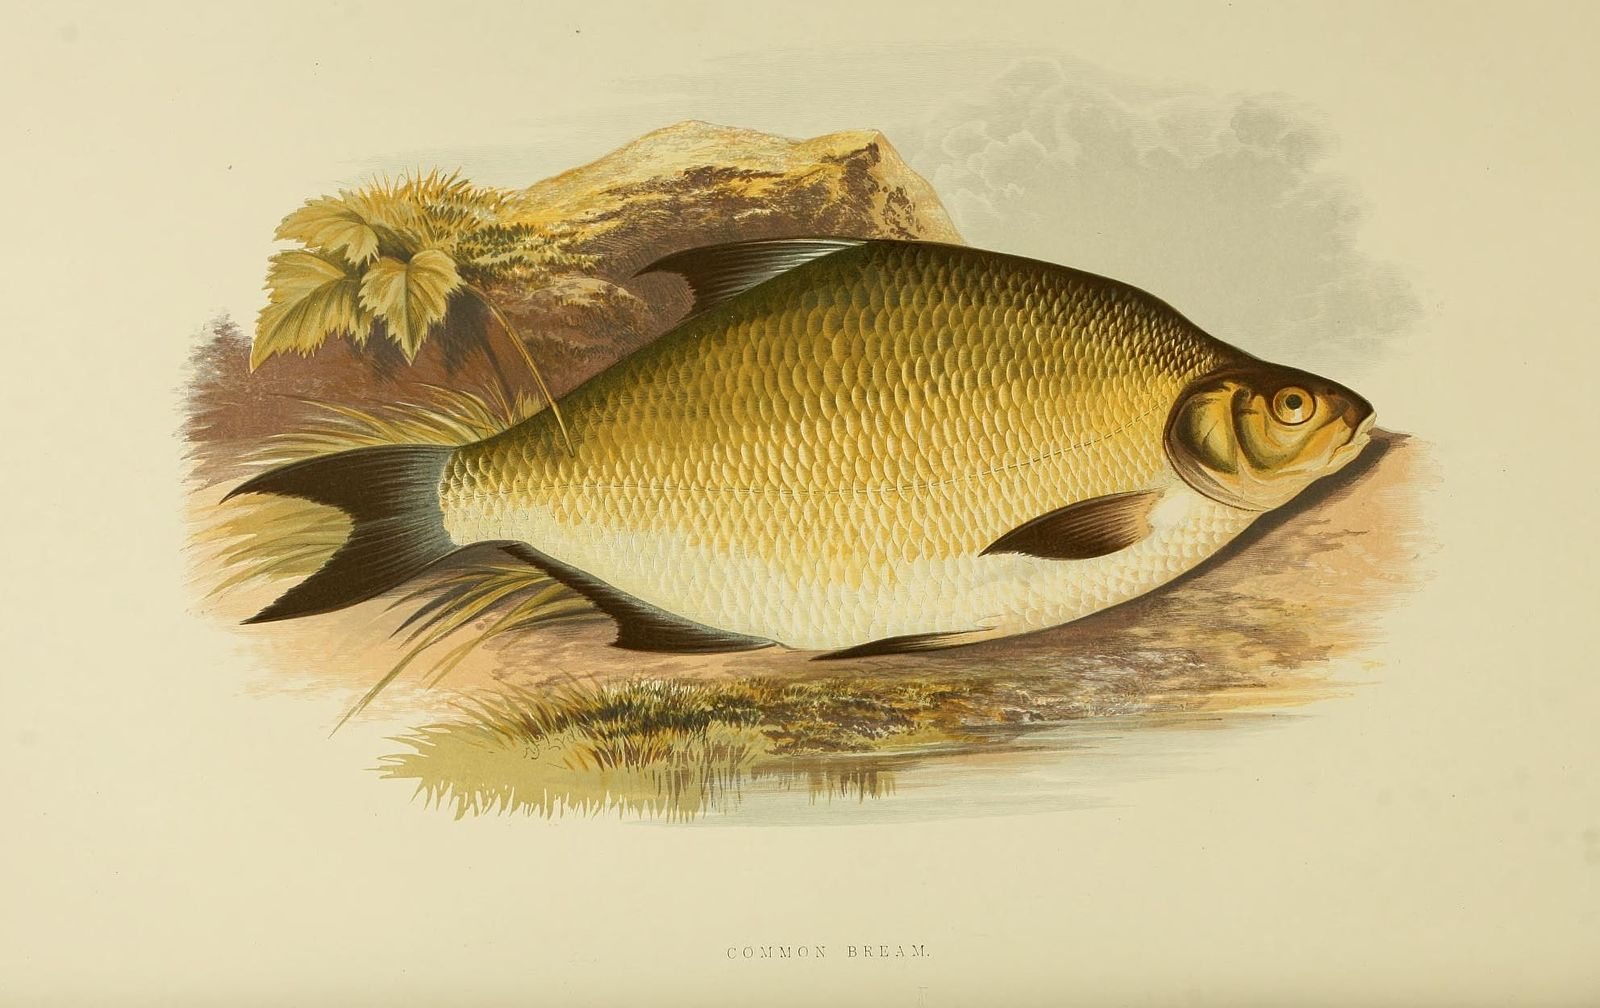 http://www.biodiversitylibrary.org/page/6177650